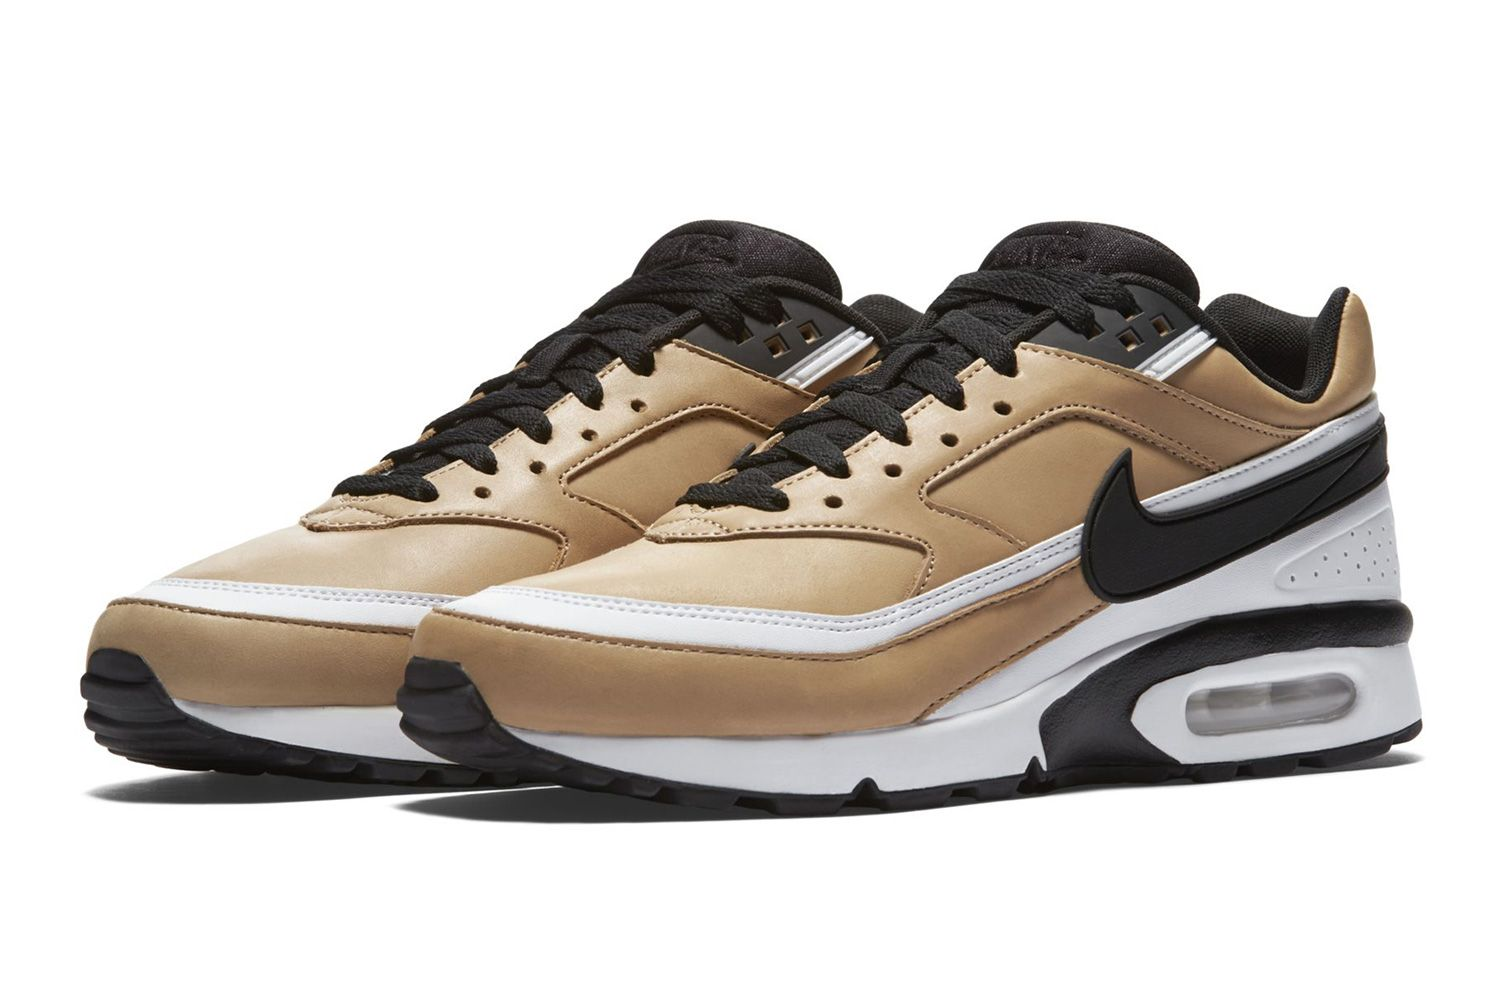 Nike's Air Max Classic BW Gets Draped in Vachetta Tan